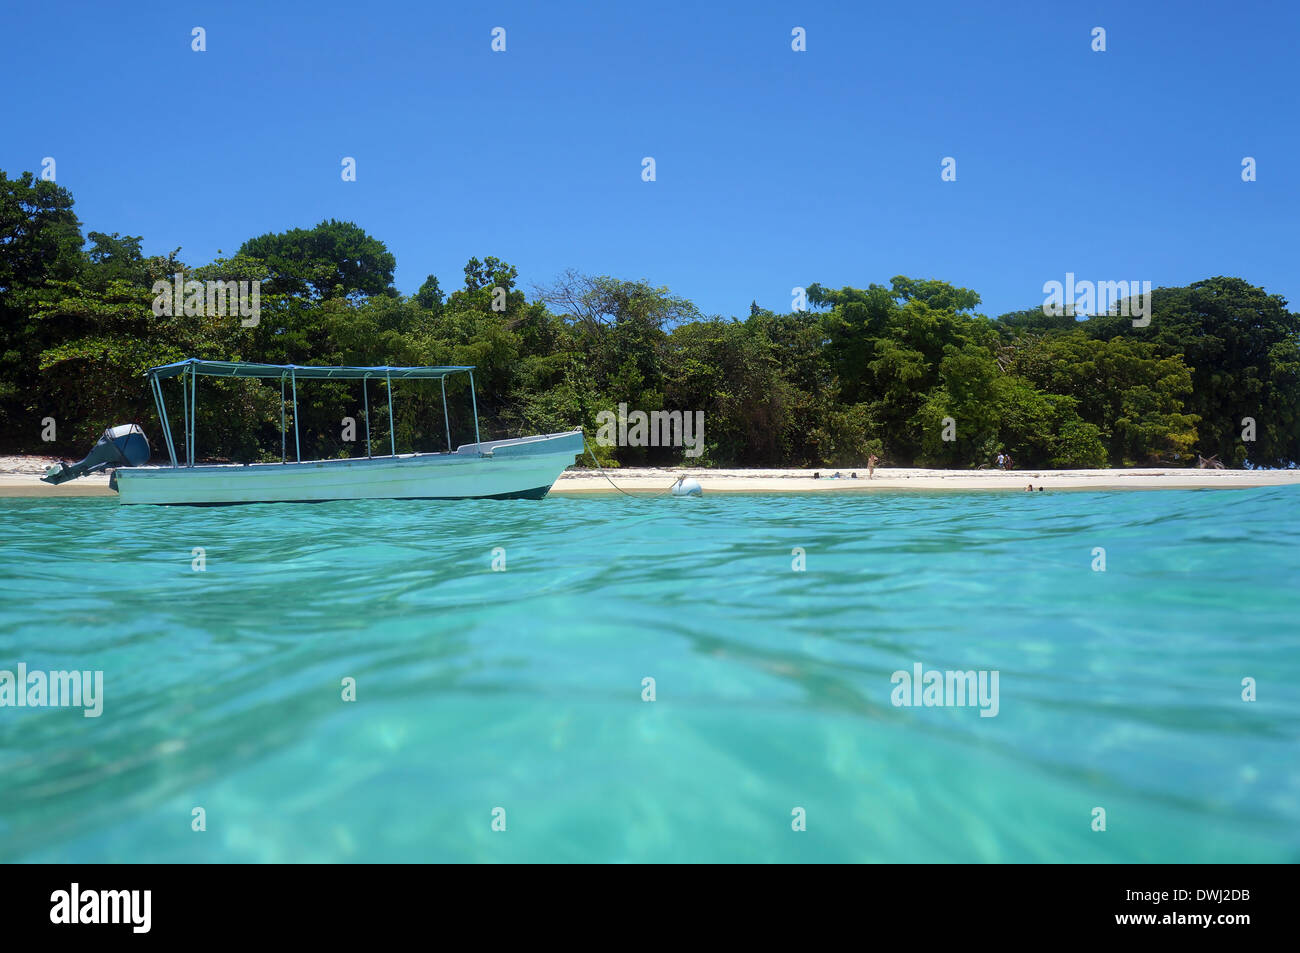 From water surface, boat on mooring buoy near an untouched tropical beach with few tourists, Caribbean sea - Stock Image